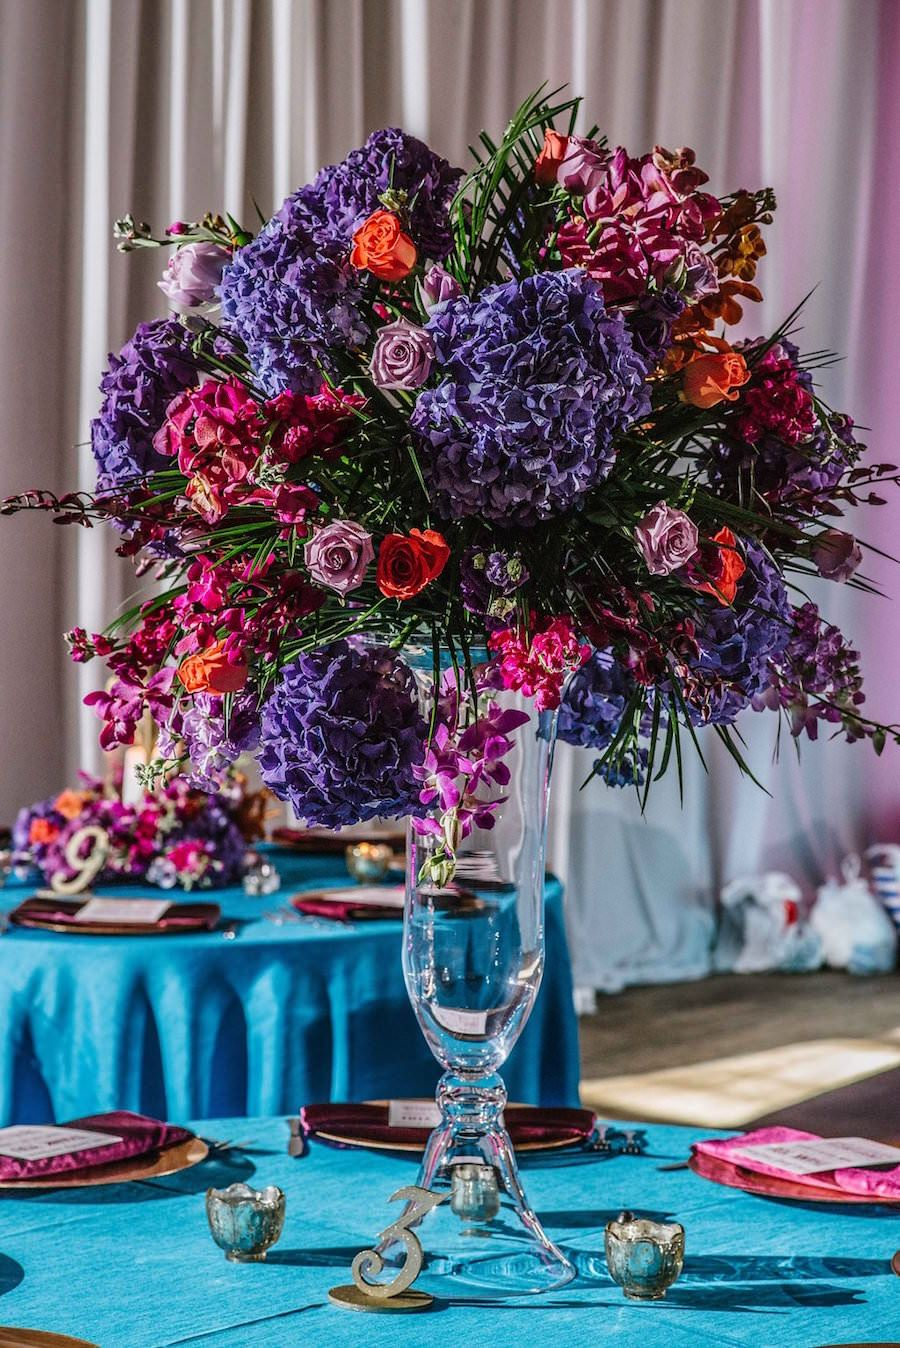 Tall Purple, Orange and Magenta Wedding Centerpiece Flowers in Glass Vase on Teal Linens | St. Petersburg Wedding Venue NOVA 535 | Purple Orange and Turquoise Moroccan Inspired St. Pete Wedding